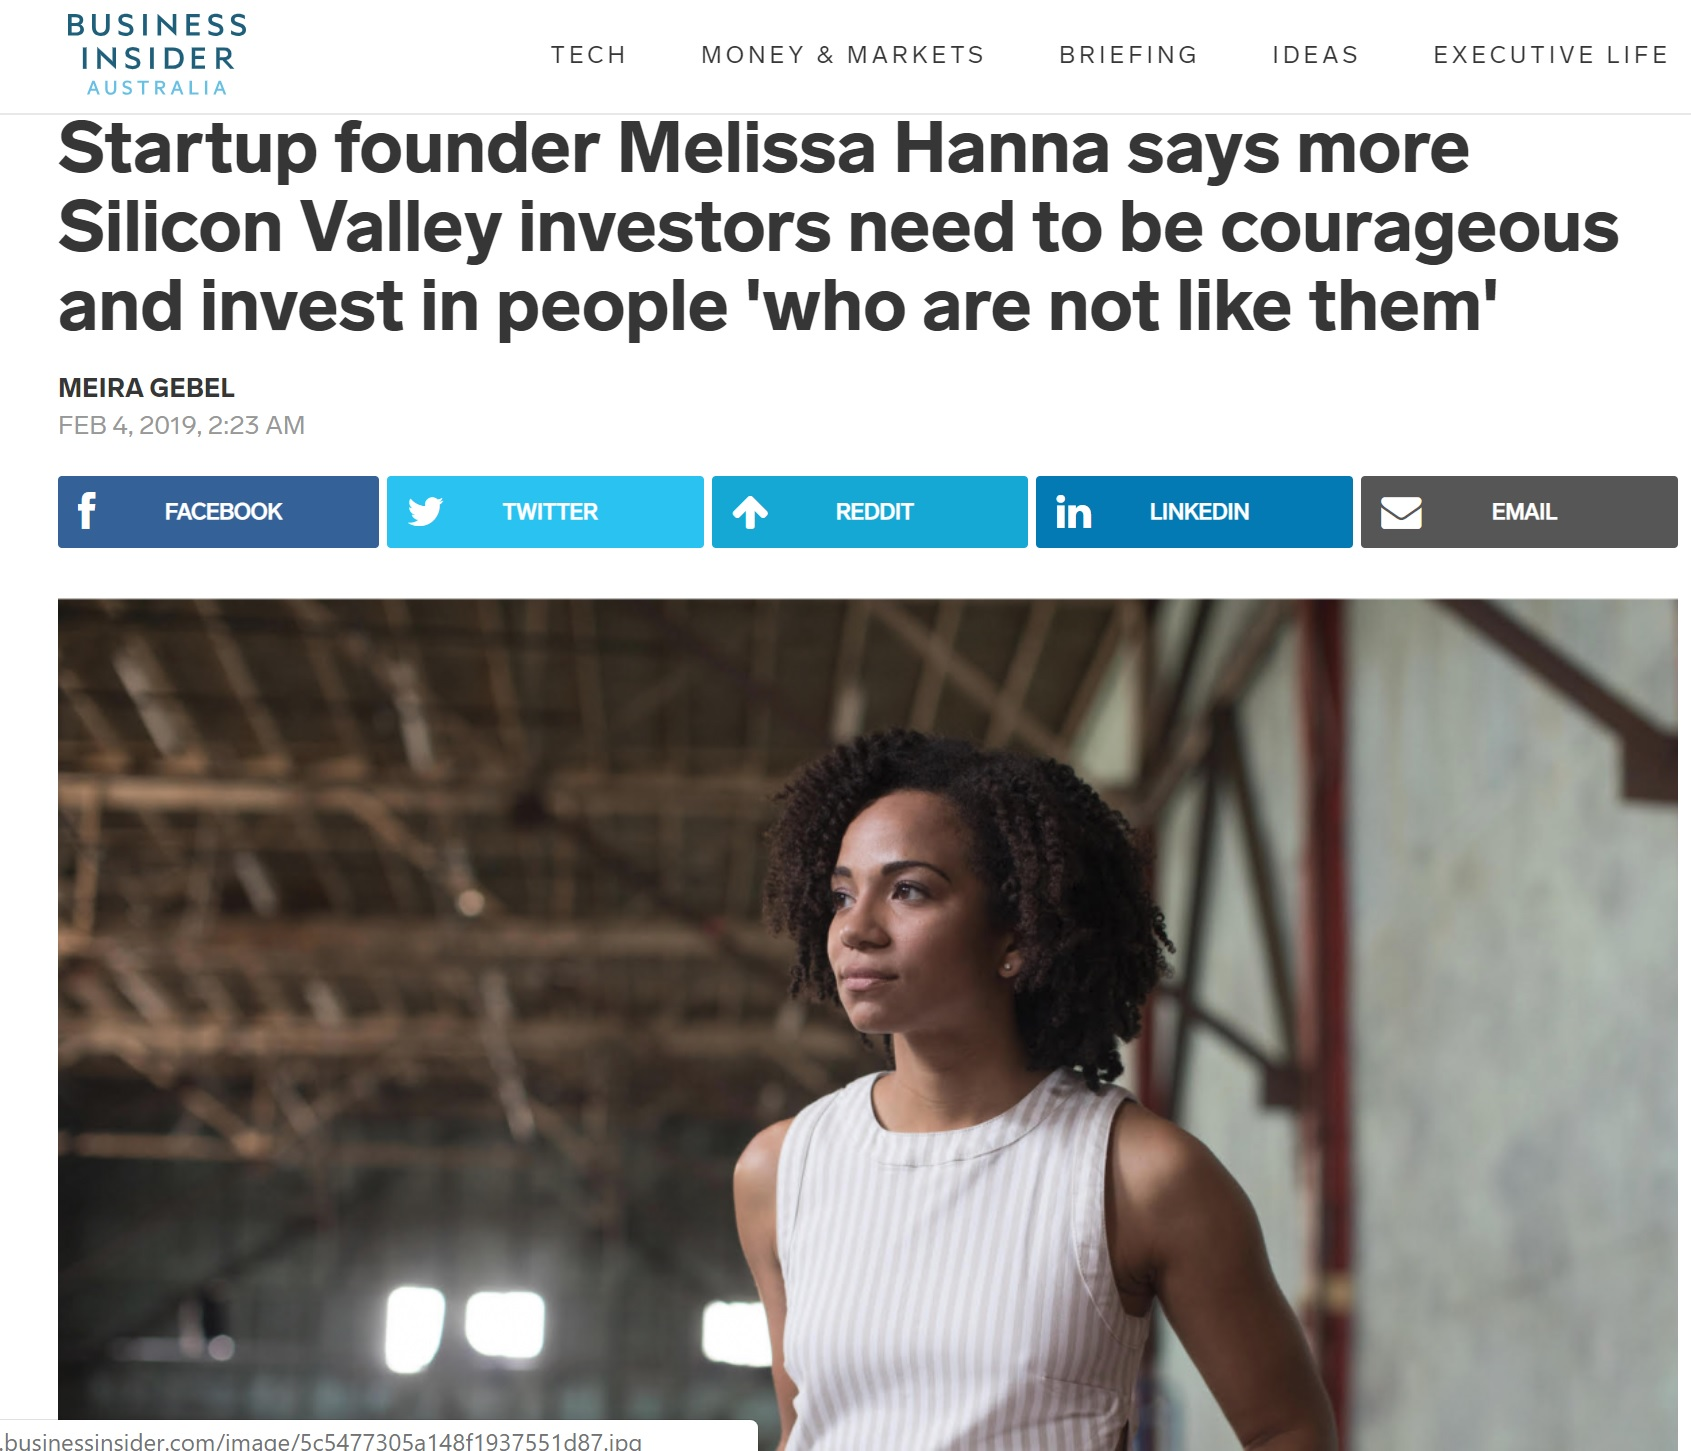 Startup founder Melissa Hanna says more Silicon Valley investors need to be courageous and invest in people 'who are not like them'